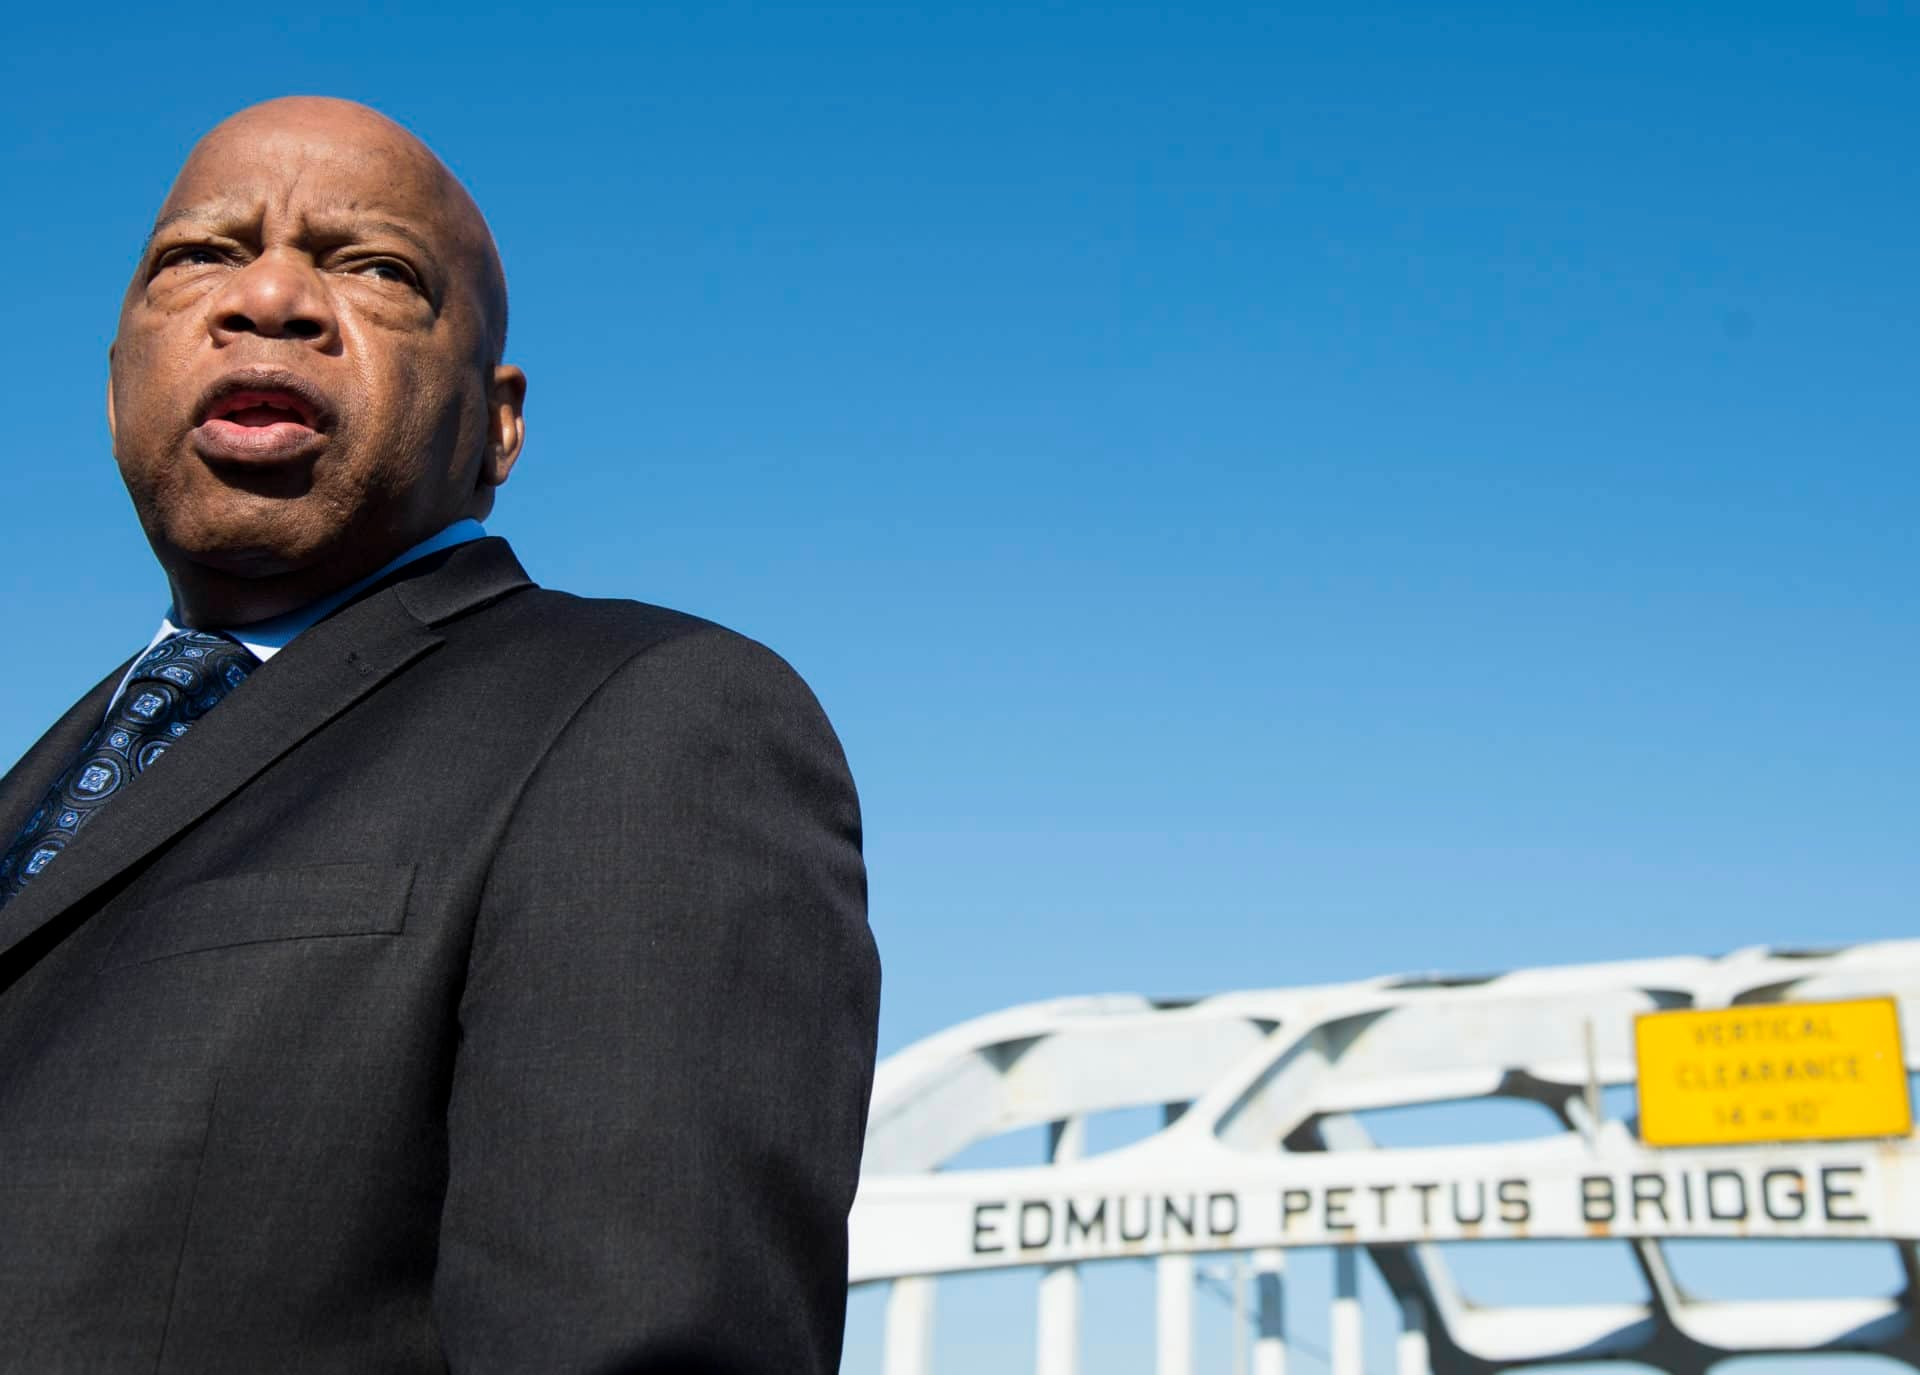 Rep. John Lewis, Real Life Icon, Reminds Us Why It's Important To Vote